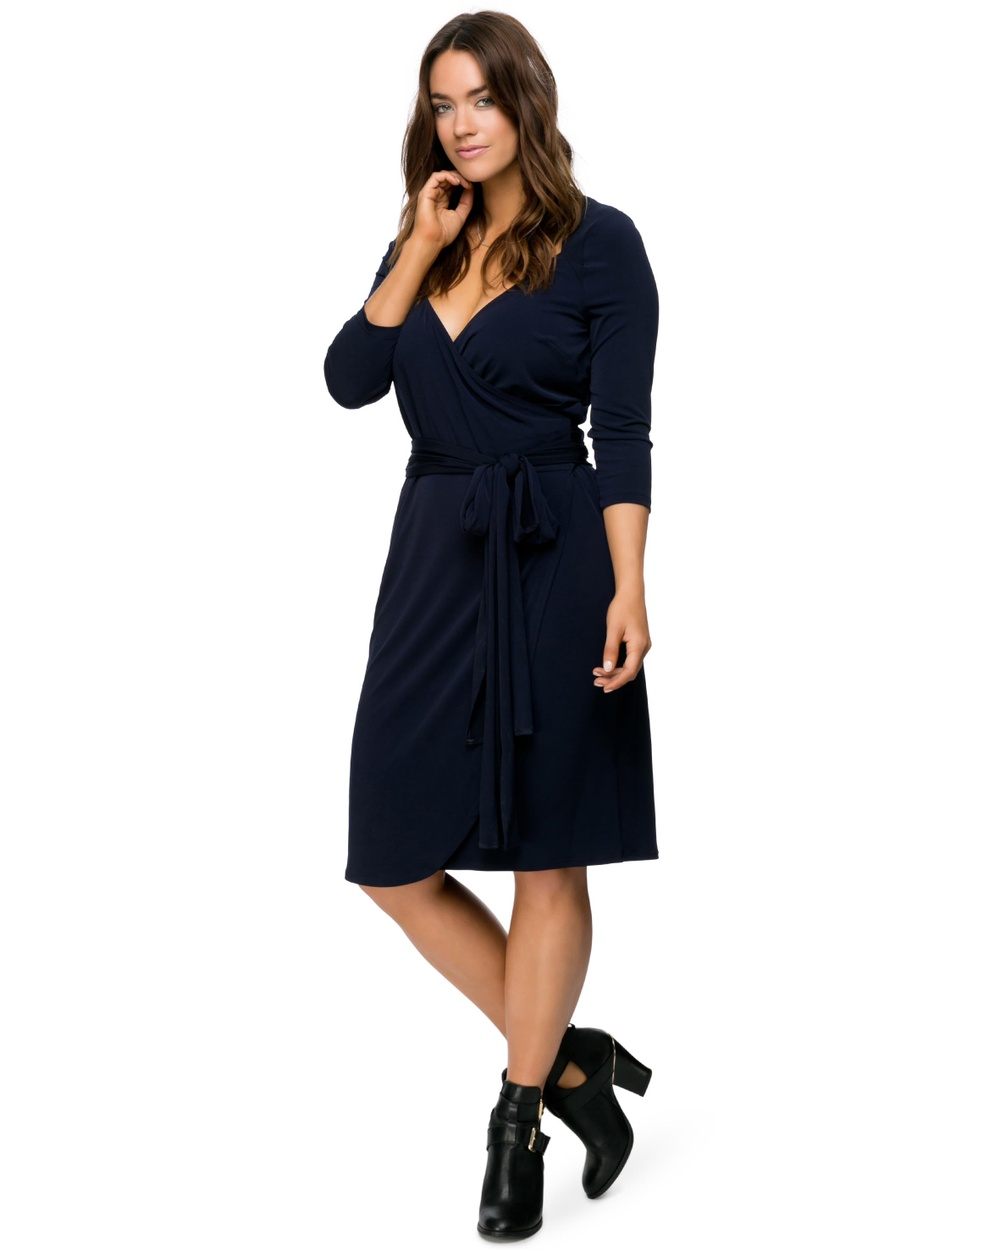 Embody Denim Royal Wrap Dress Dresses Indigo Royal Wrap Dress